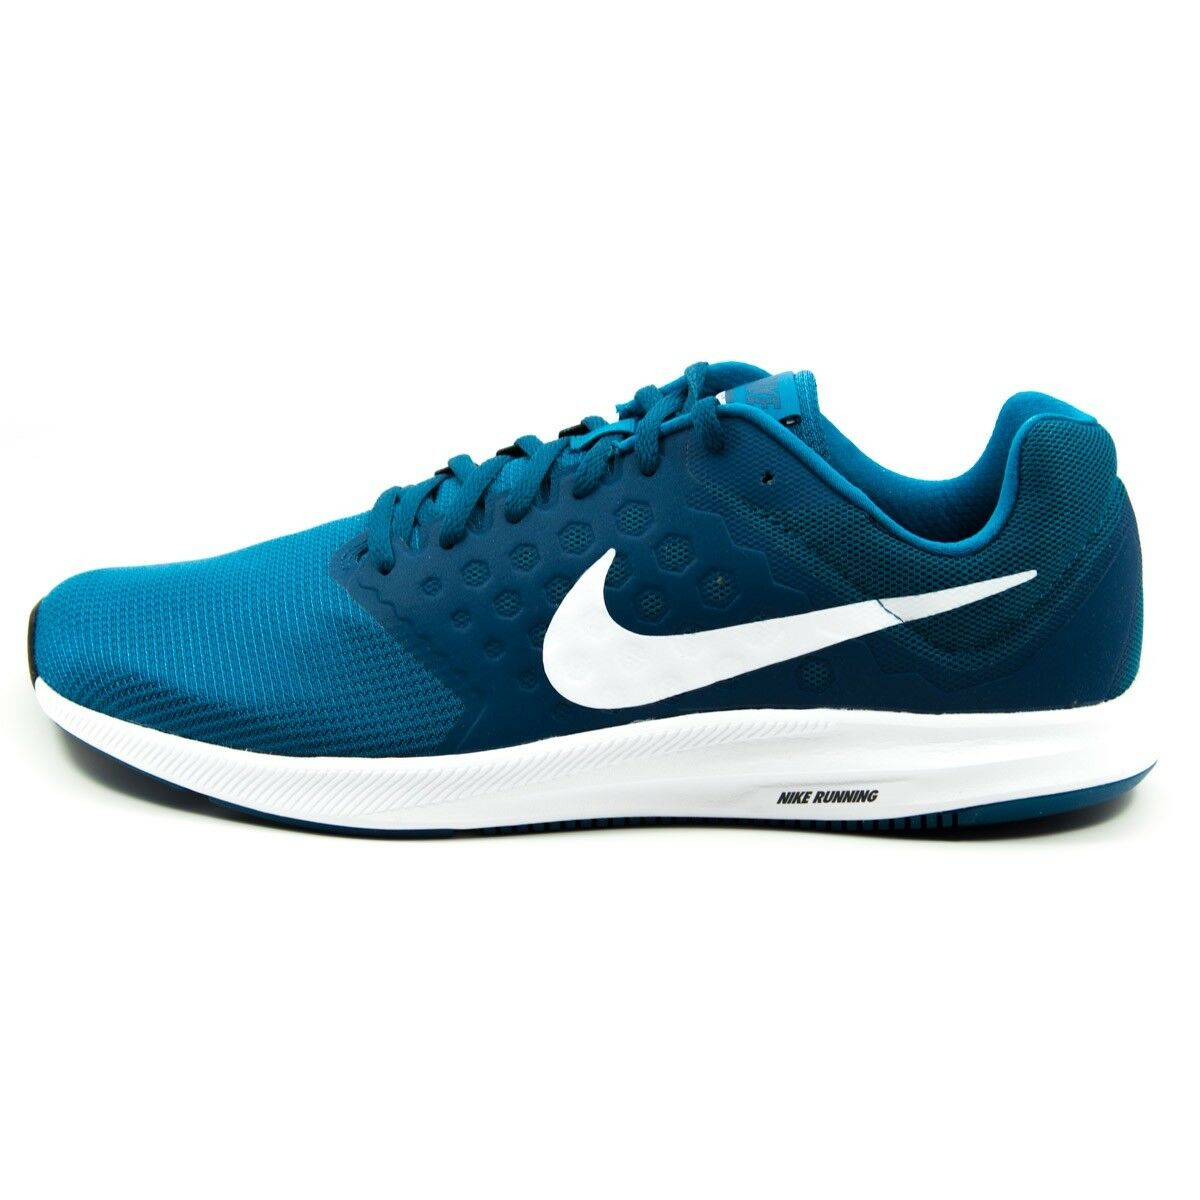 80 MENS NIKE DOWNSHIFTER 7 SIZE 13 NEW 852459 301